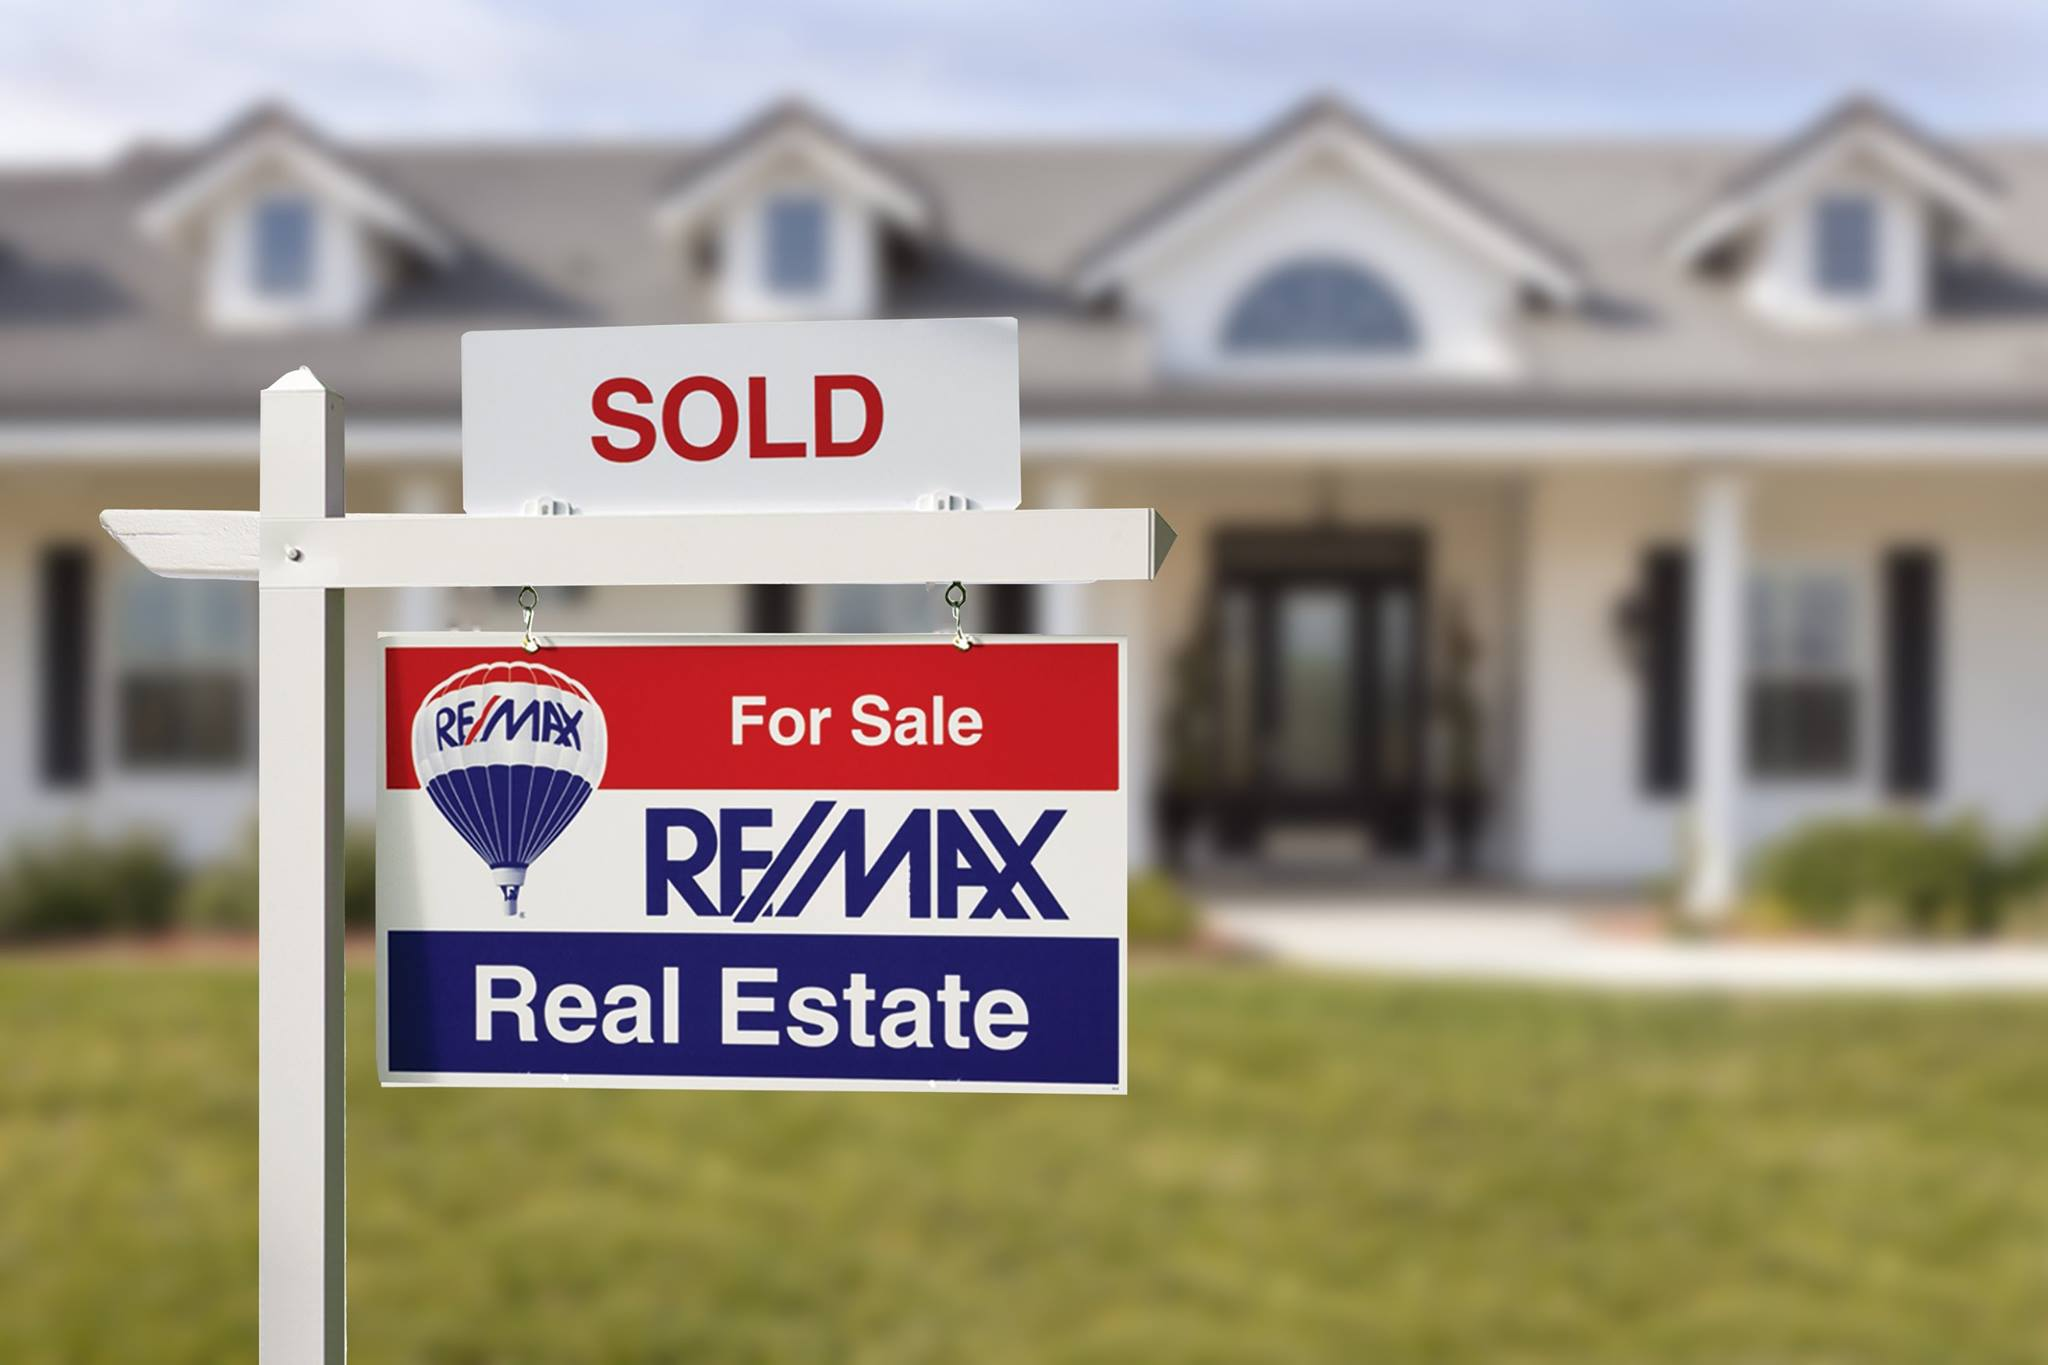 remax-sold-sign-house.jpg